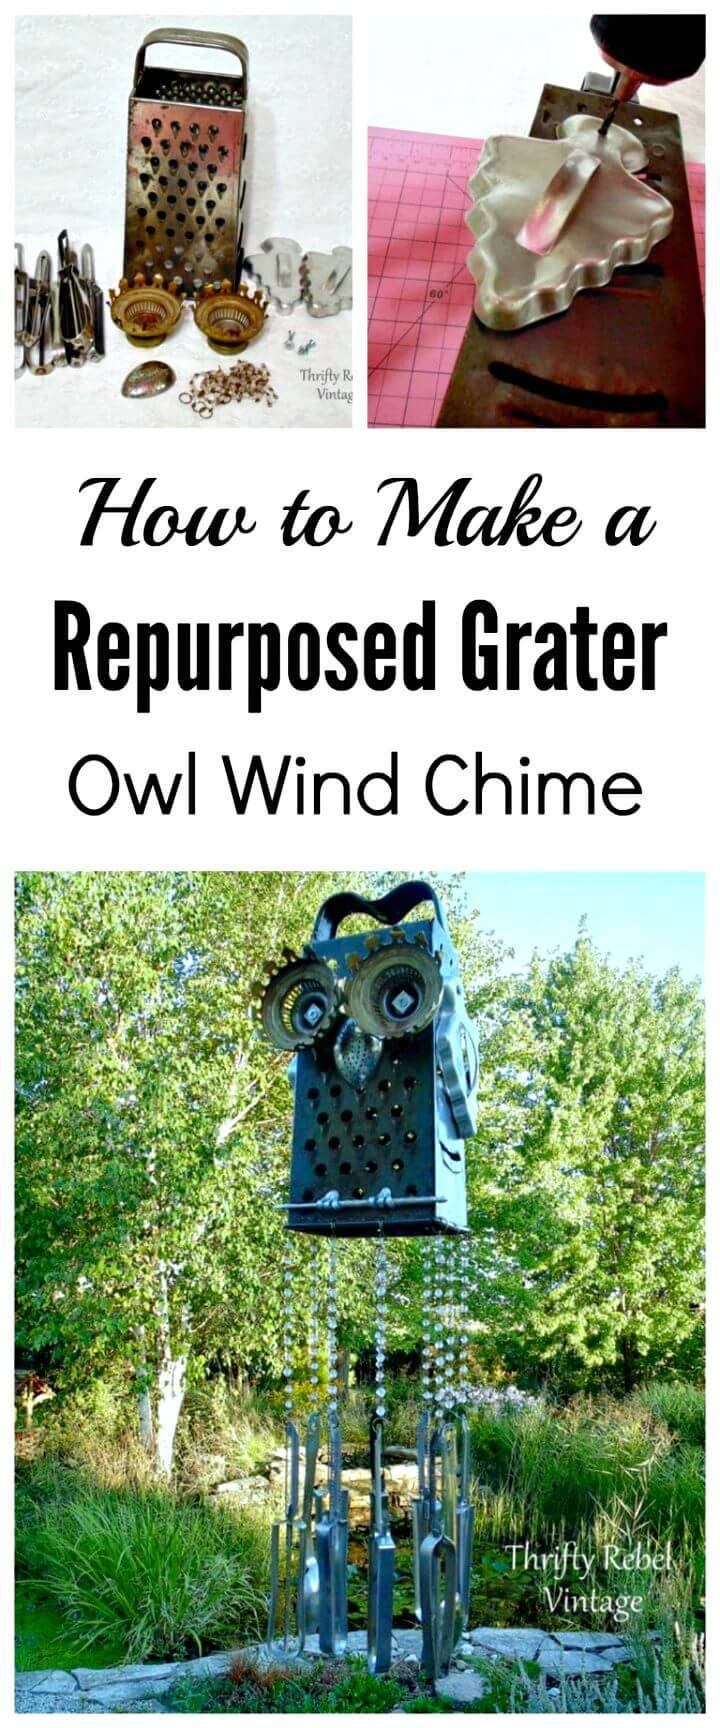 How To Re-purposed Junk Owl Wind Chime Tutorial